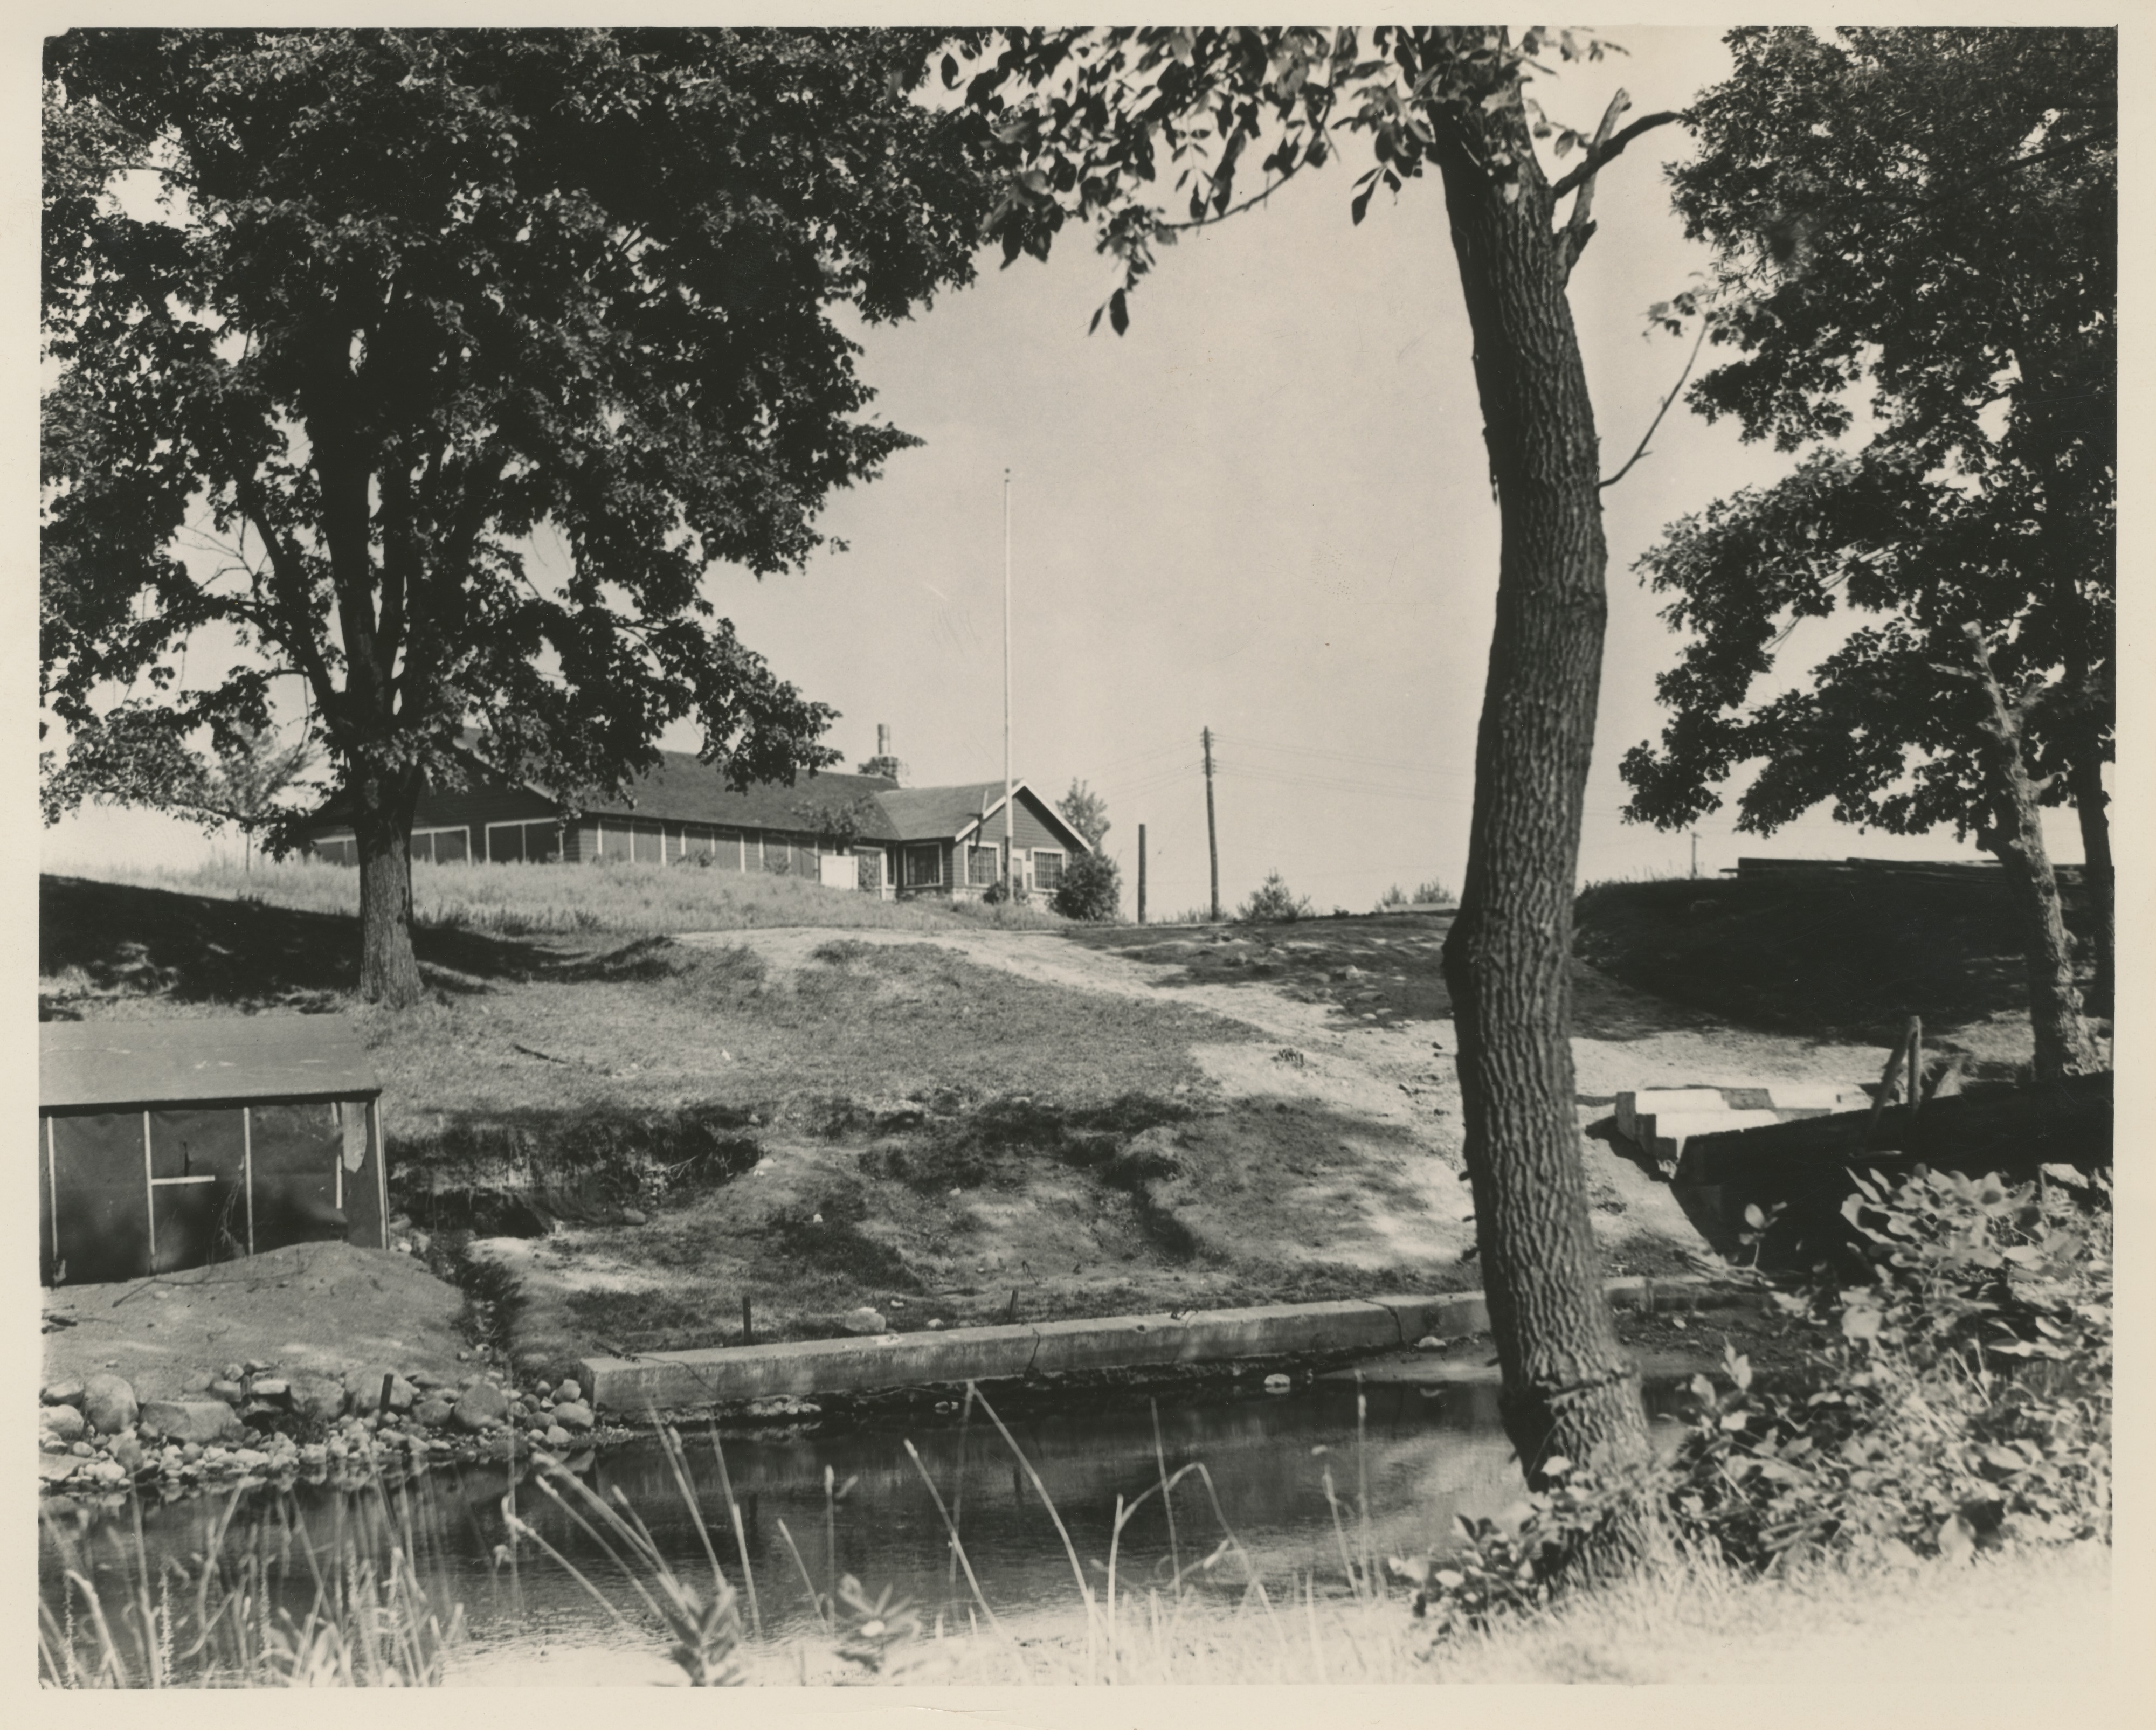 Boy Scout Camp Newkirk at Dexter, August 1937 image